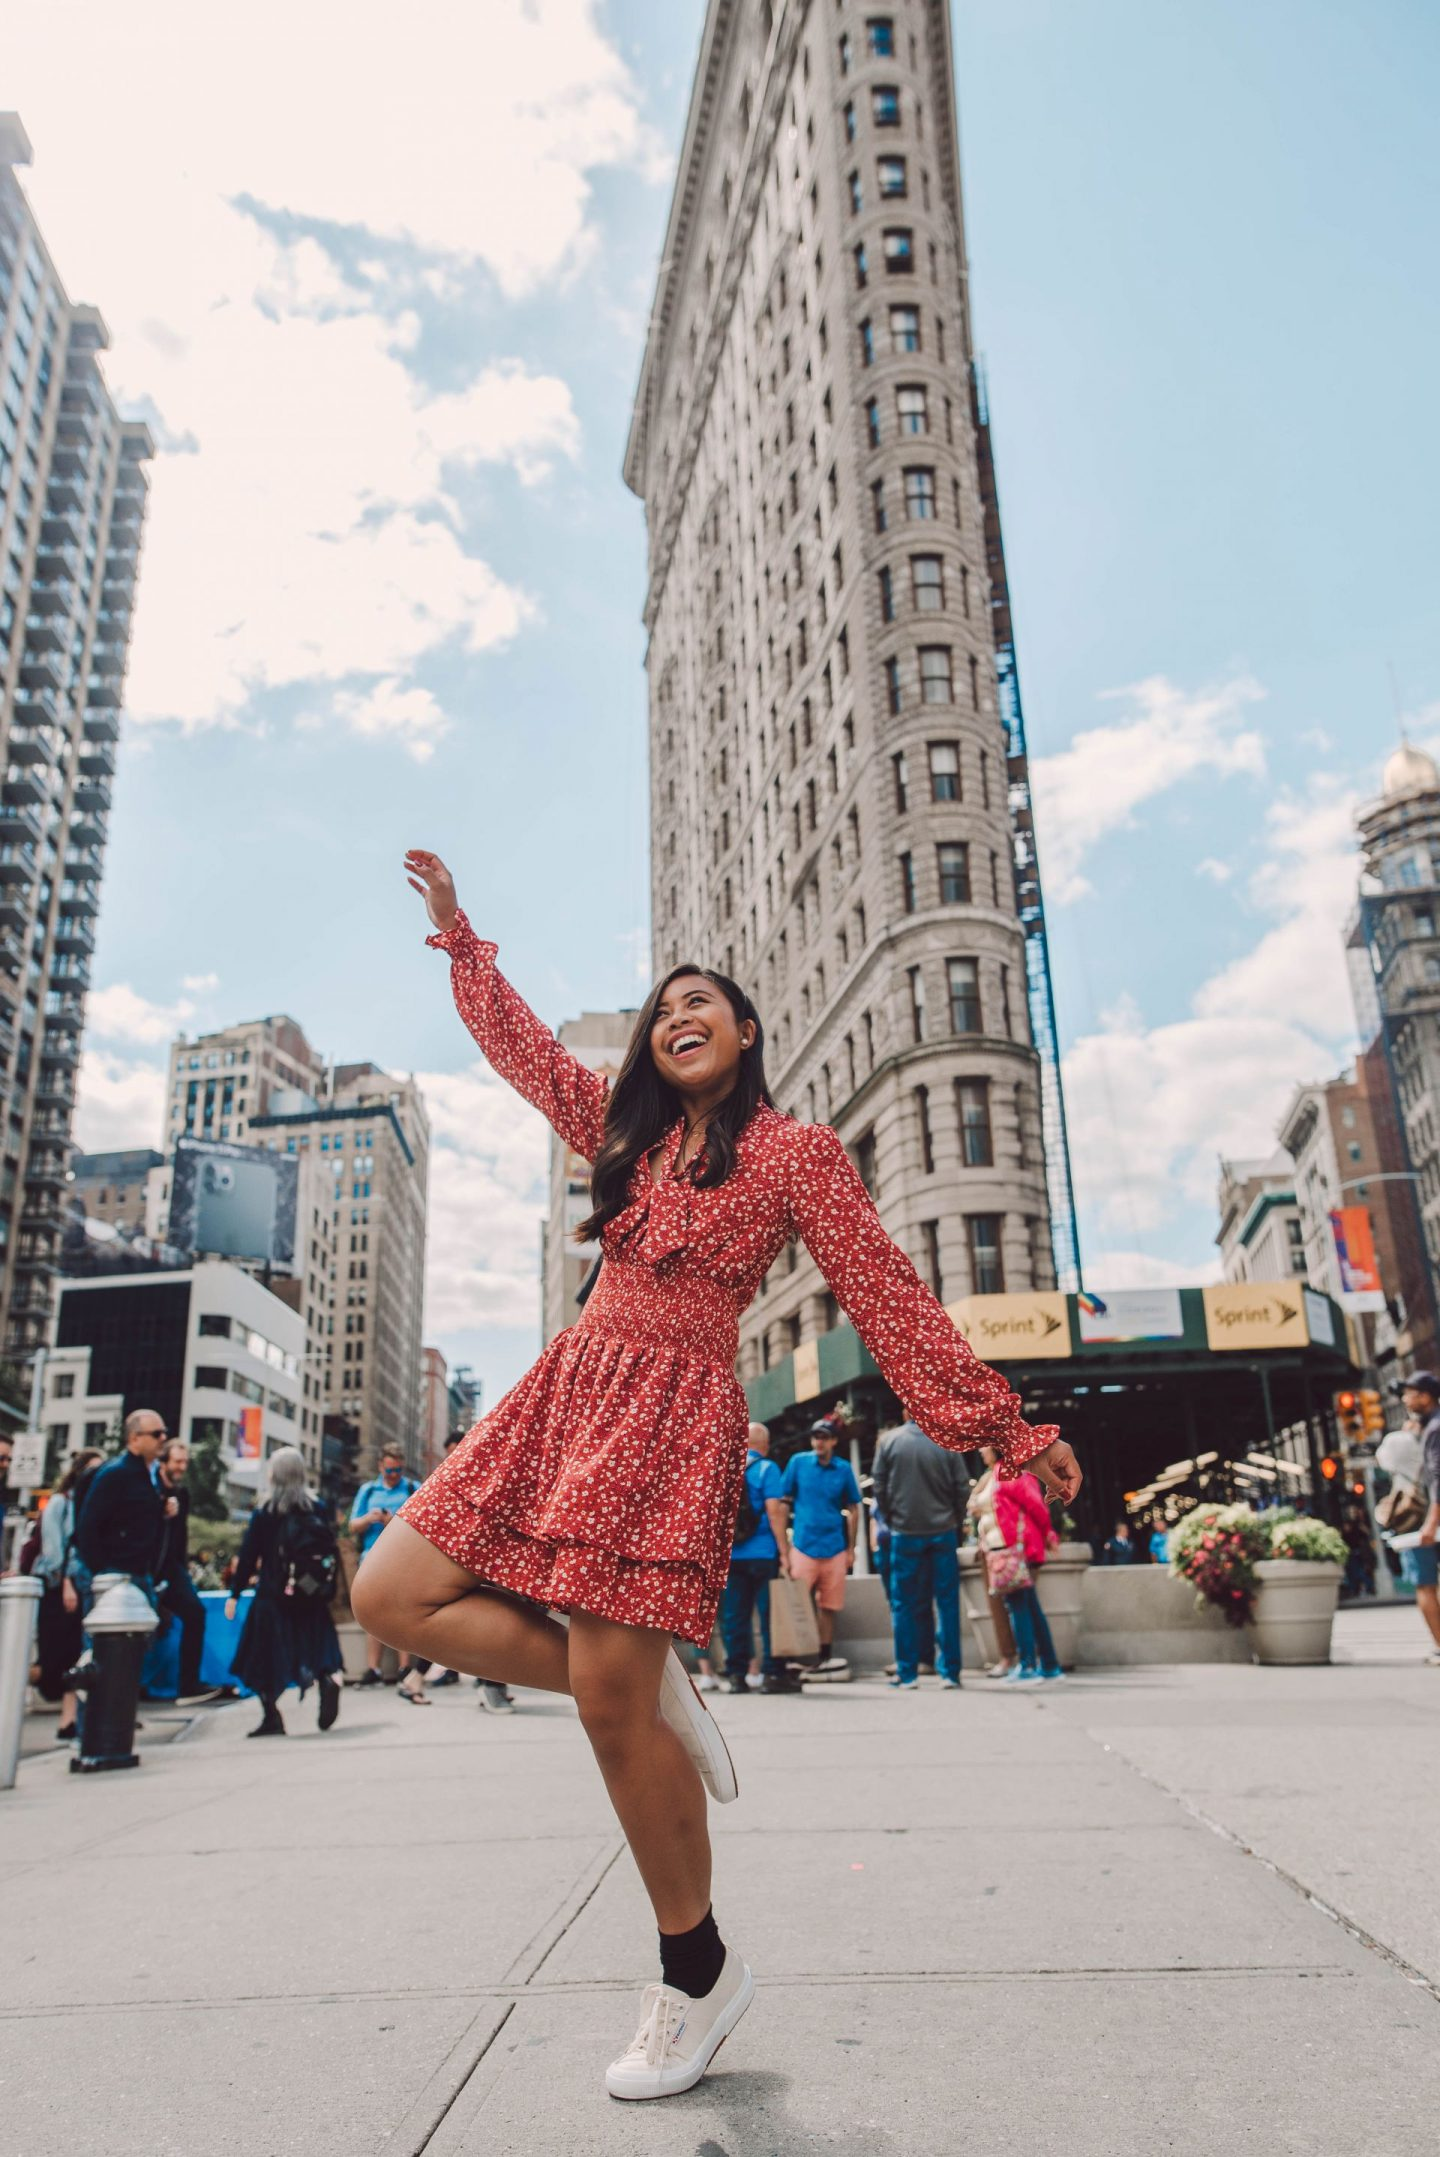 Great Photo at the Flatiron Building in NYC - Emmas Edition